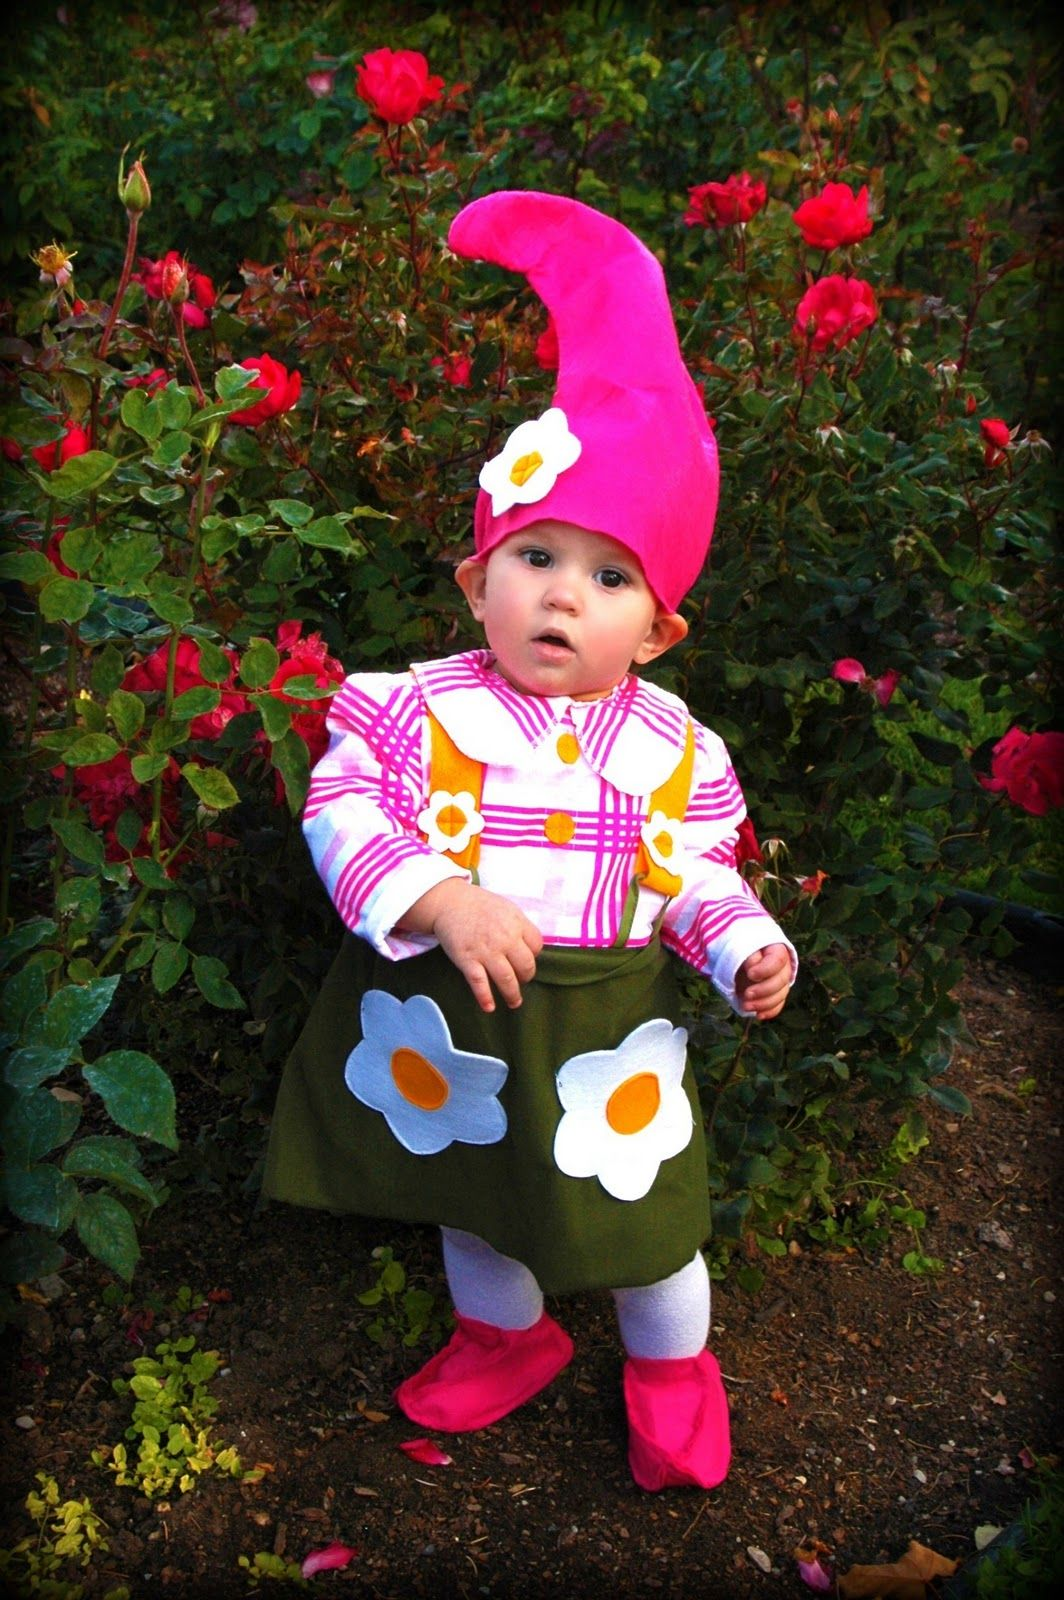 Gnome In Garden: Someday, I Want To Be A Mommy